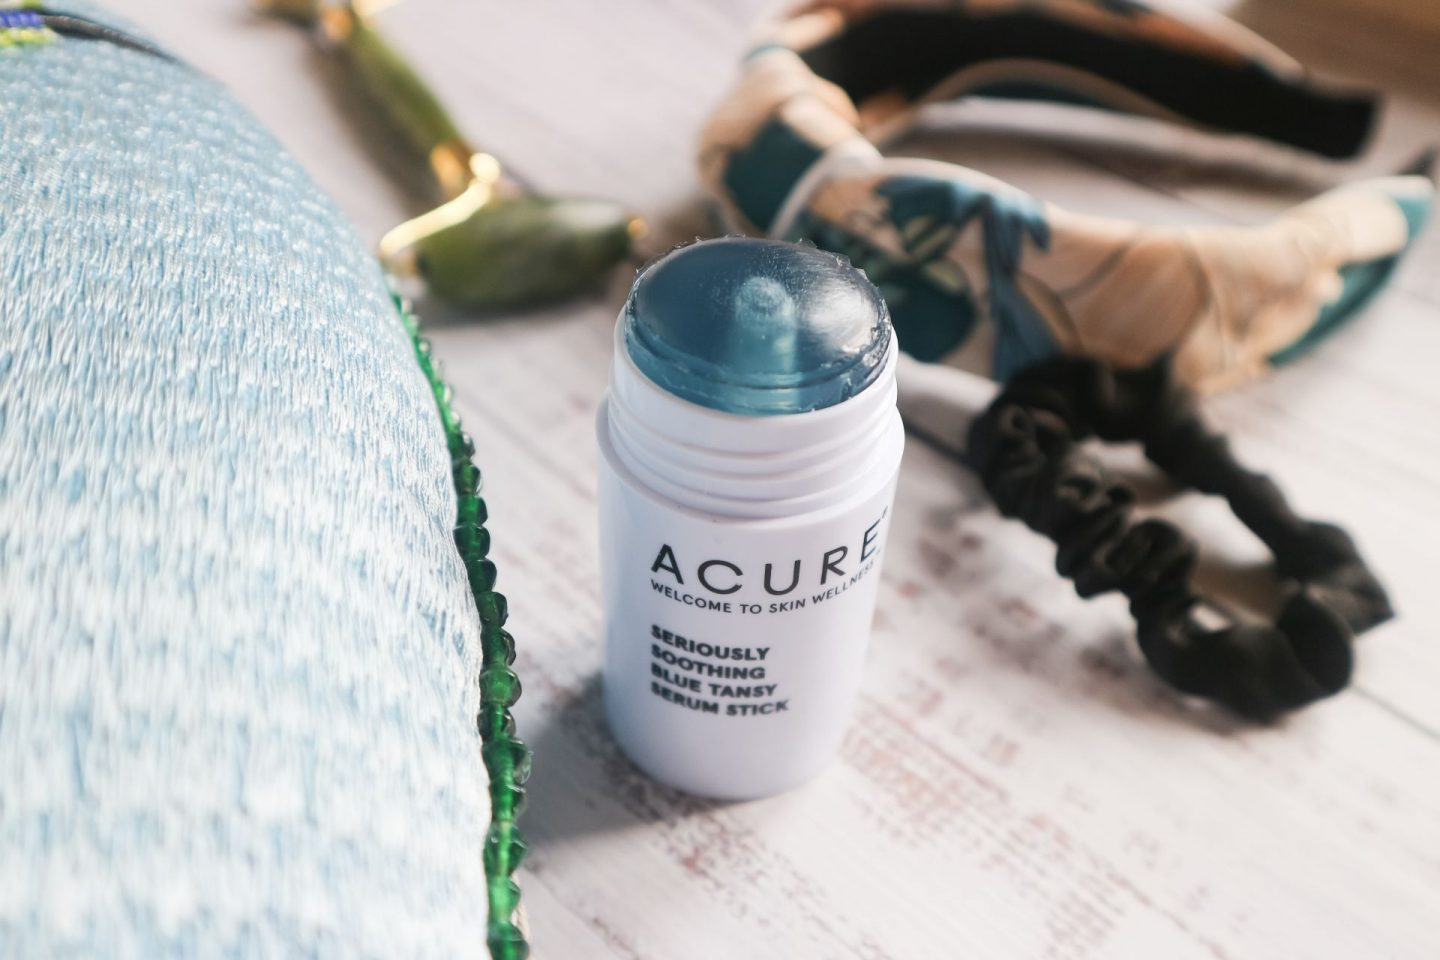 Acure Beauty Seriously Soothing Blue Tansy Serum Stick review